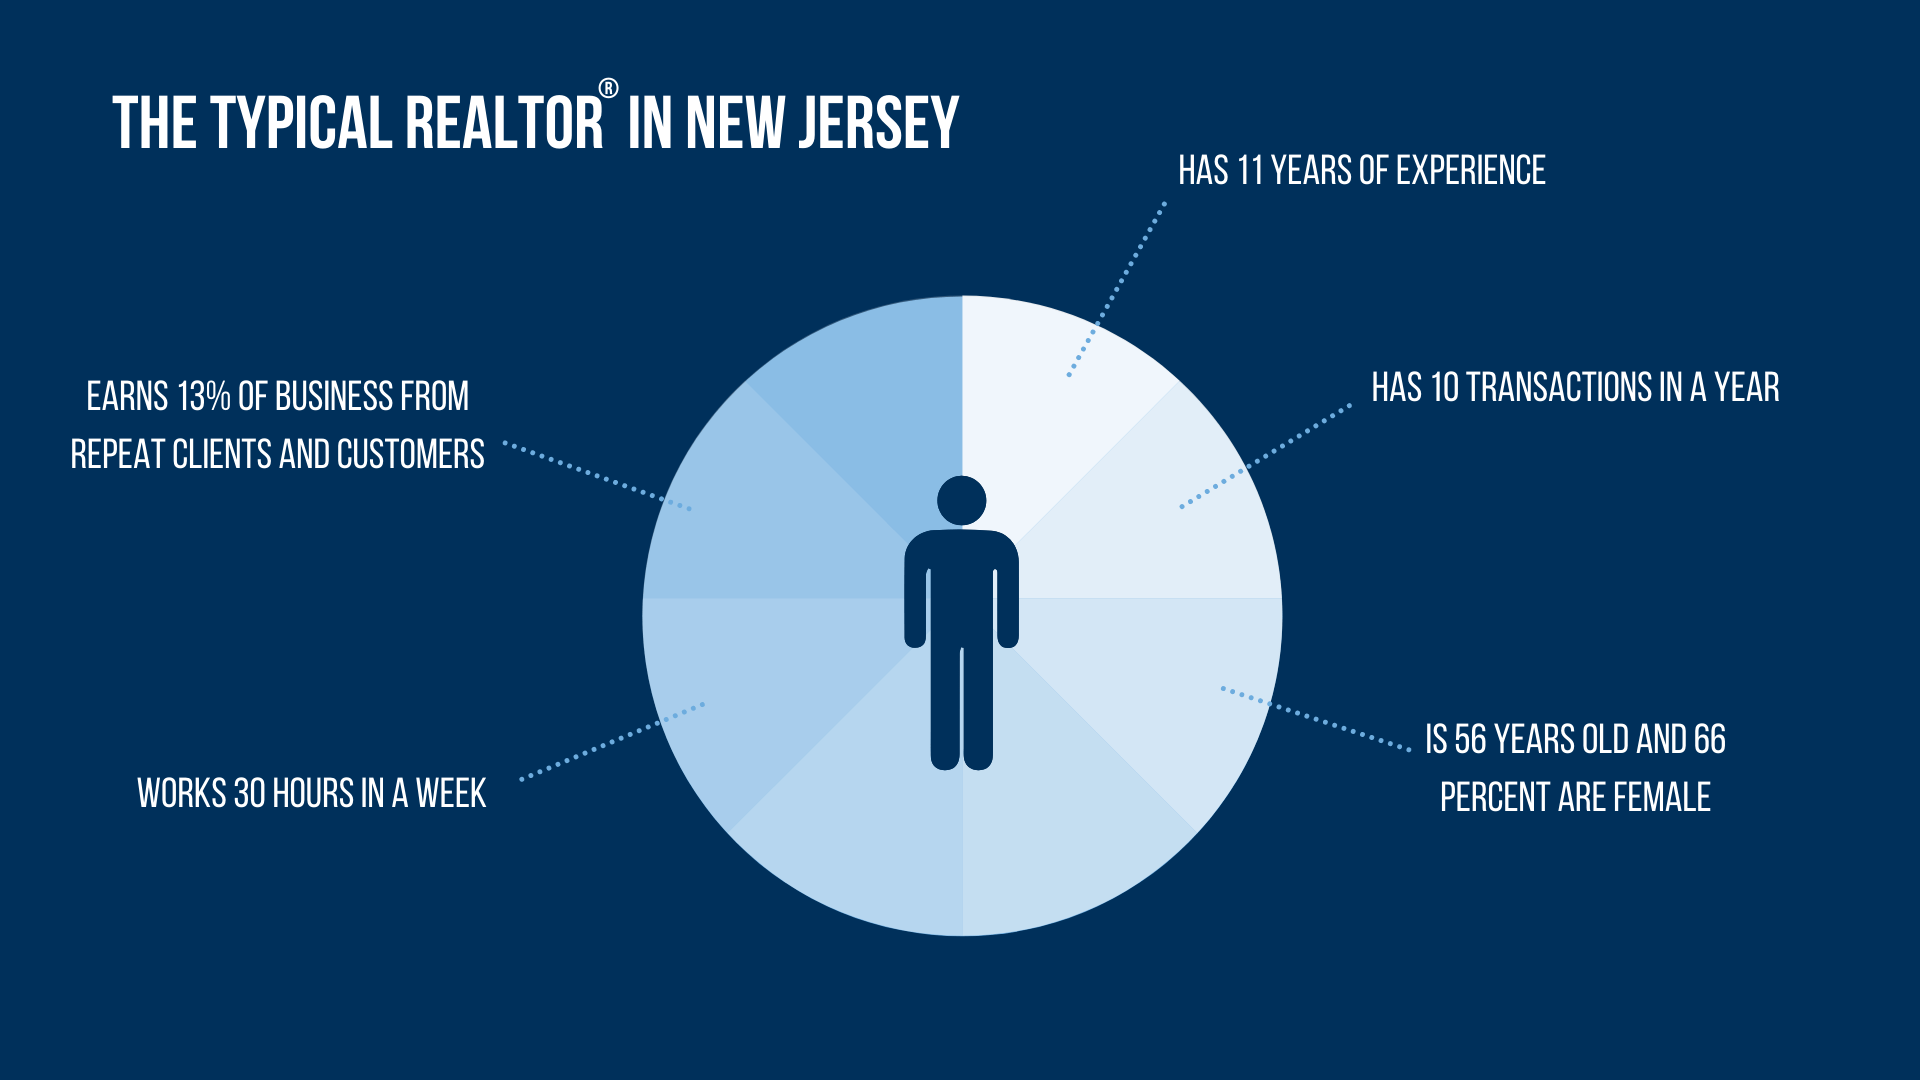 The Typical Realtor®in NJ